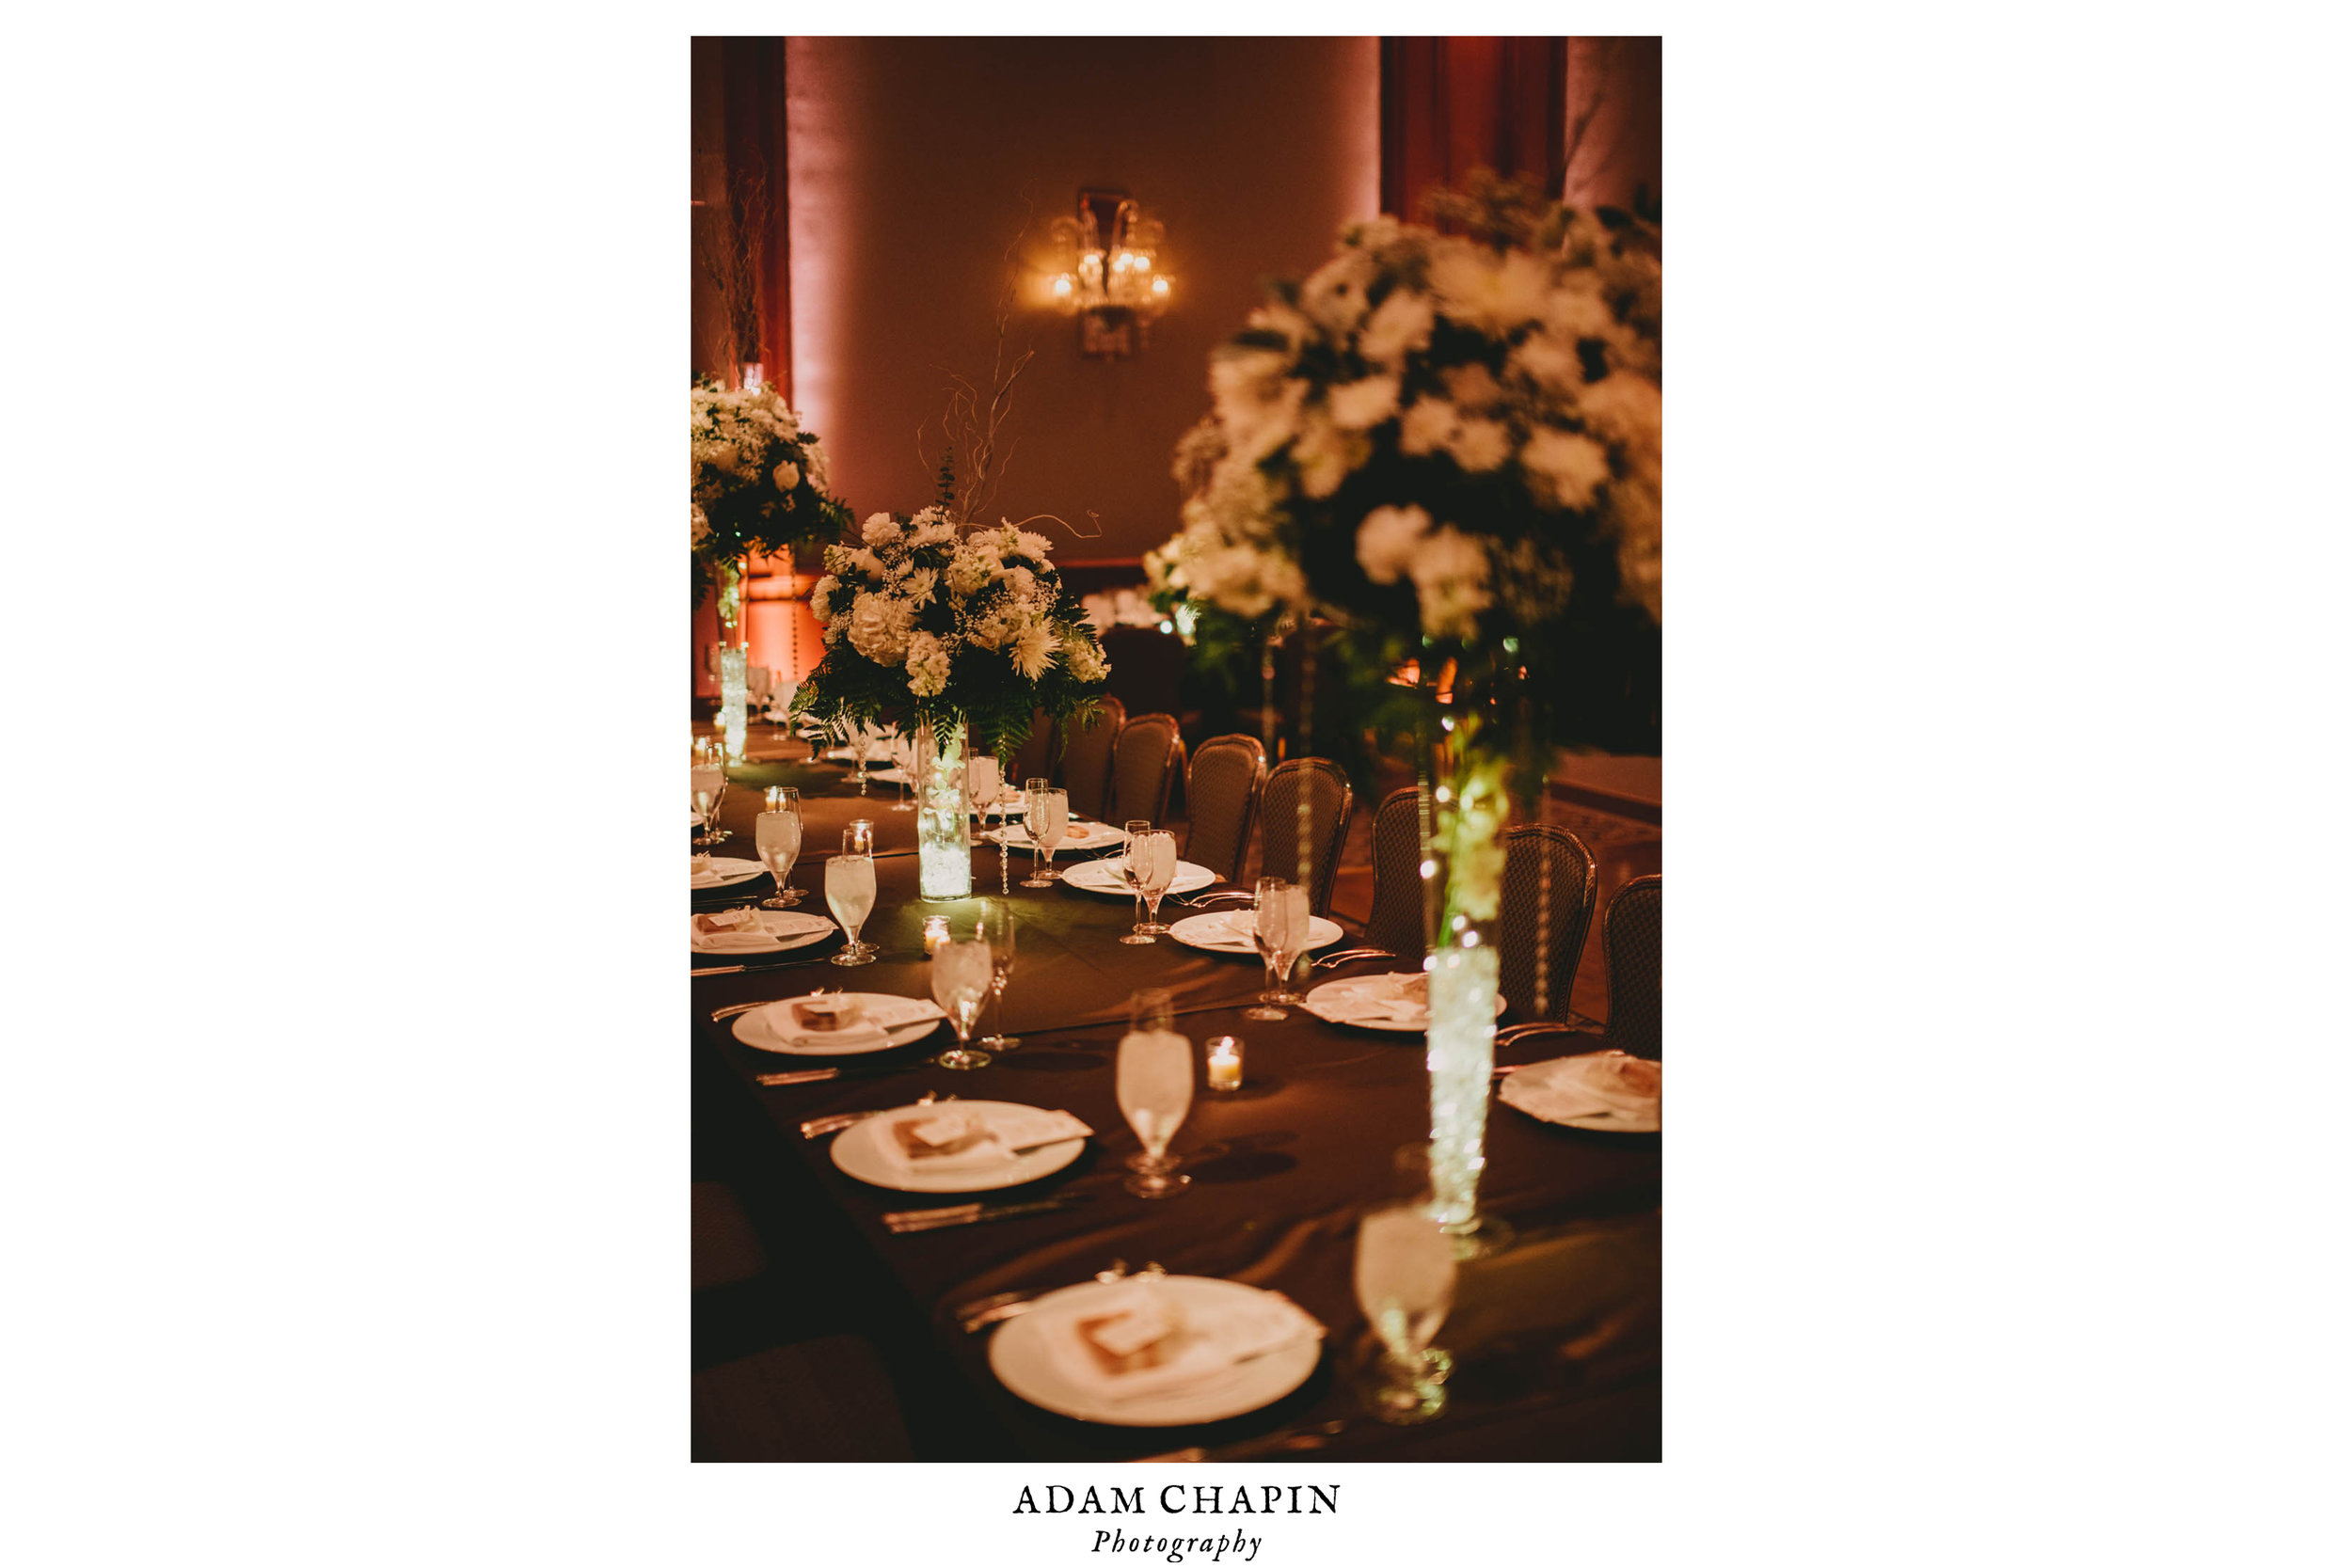 glamorousumsteadhotelandspaweddingreceptiondetailphotos.jpg